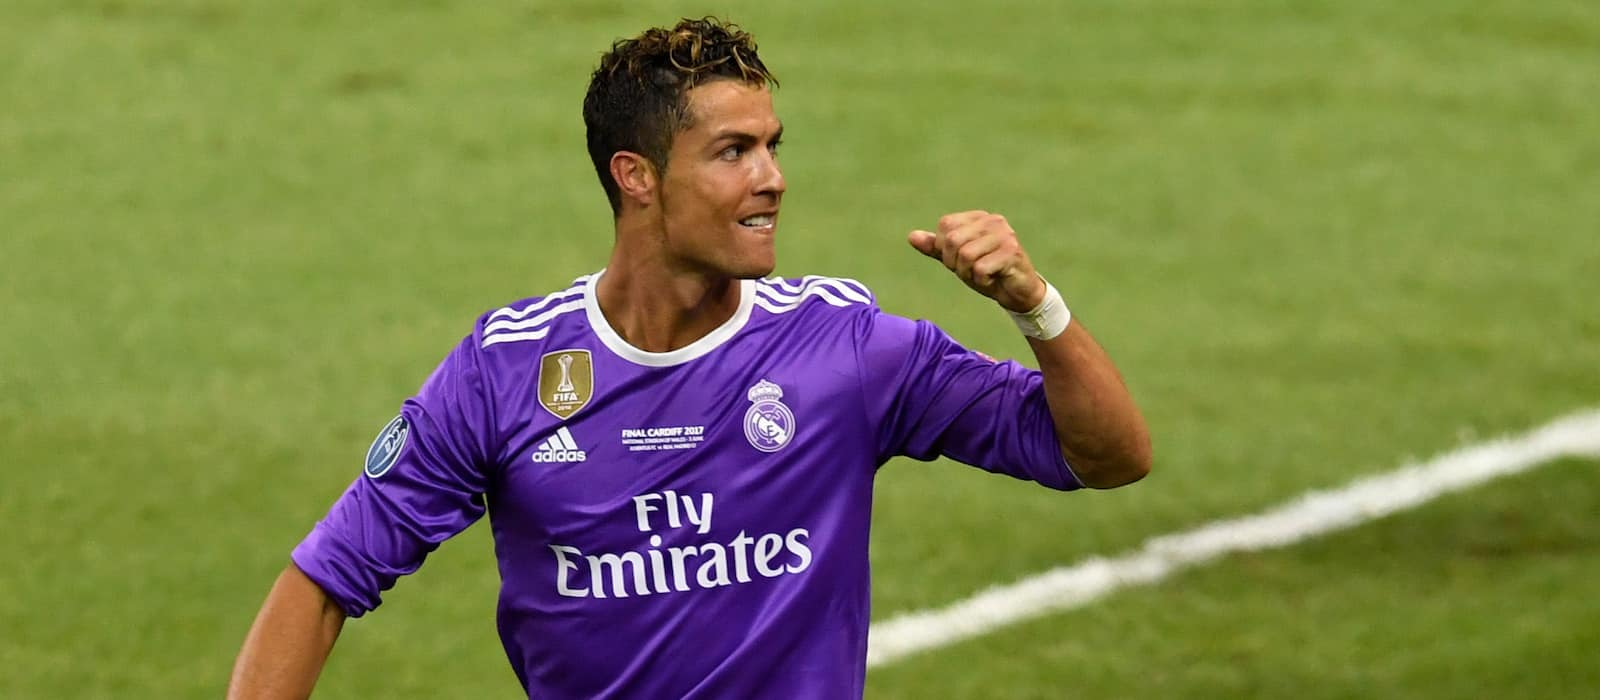 Sky Sources: Cristiano Ronaldo set to leave Real Madrid this summer